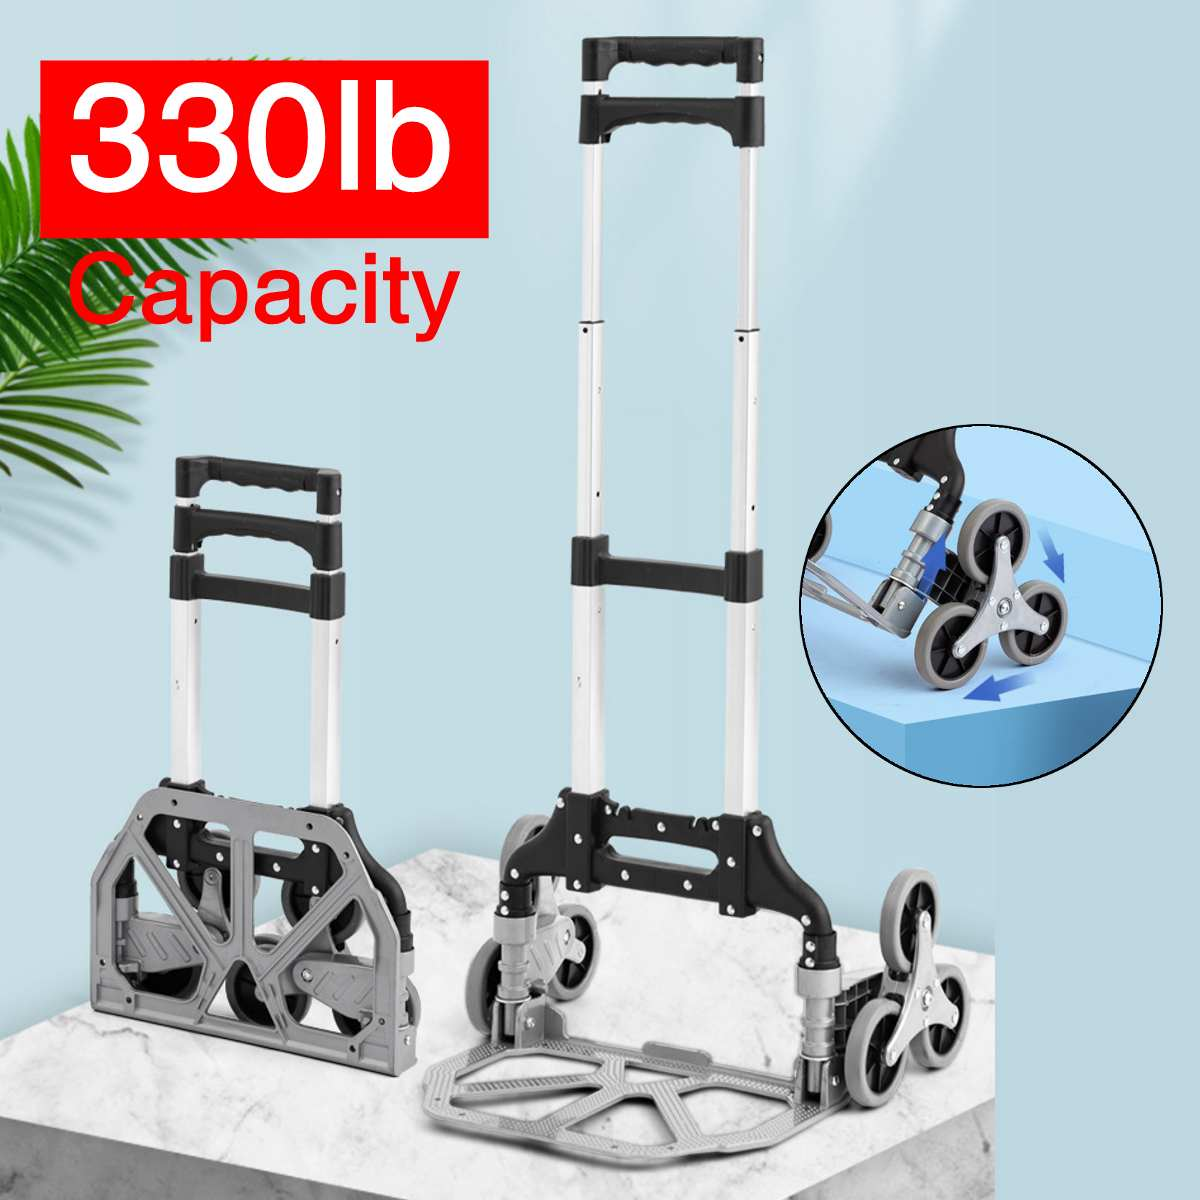 330lbs Climbing Hand Truck Aluminum Alloy Portable Climbing Cart 6 Crystal Wheels All Terrain Stair Climbing Cart